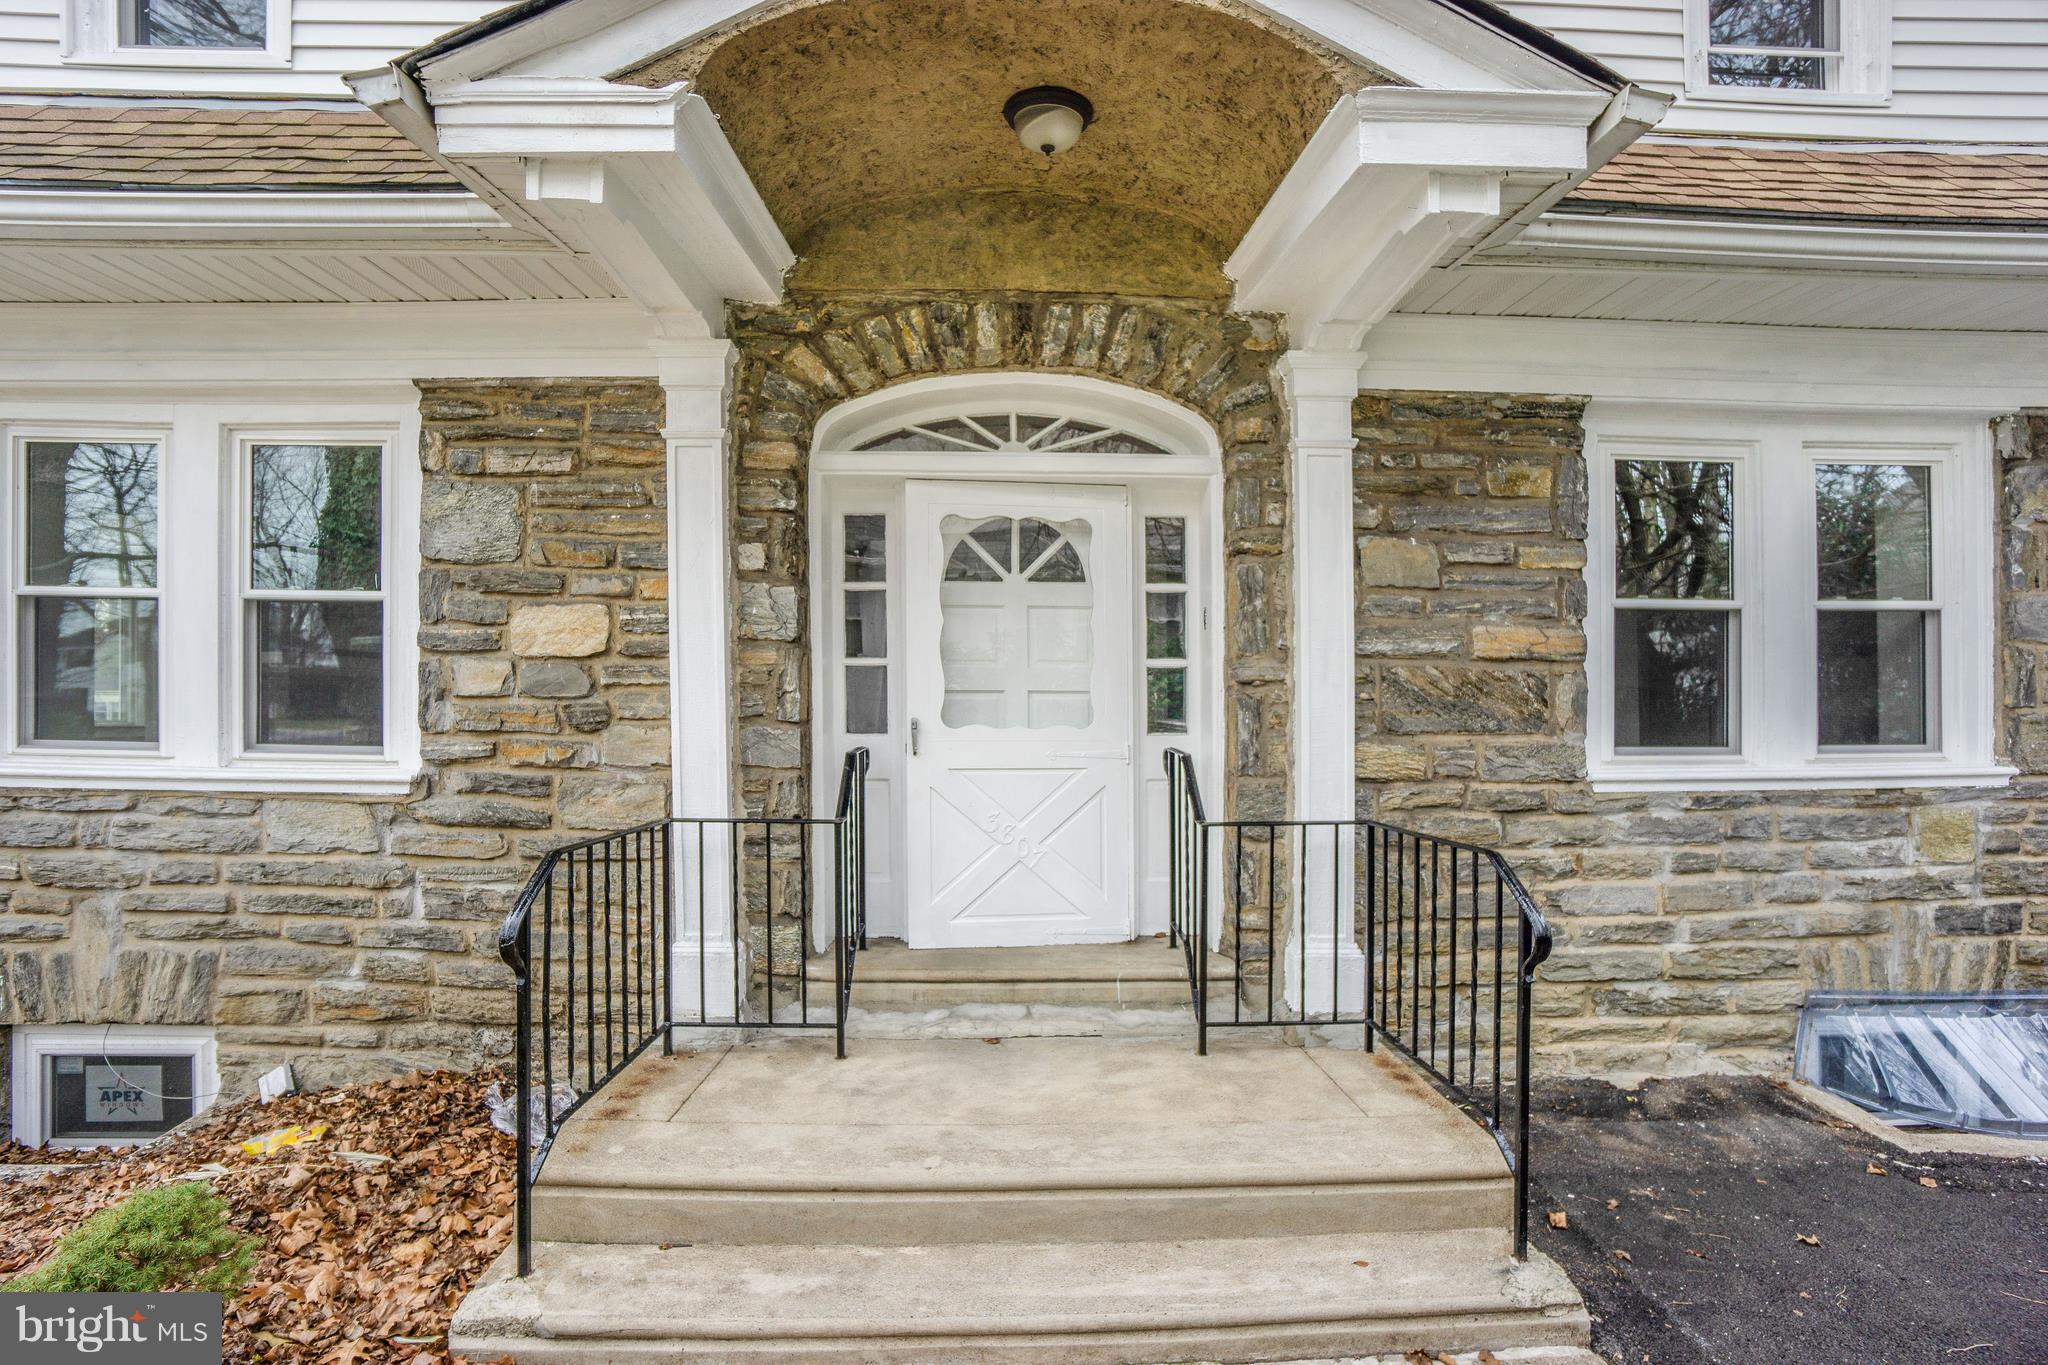 3807 STATE ROAD, DREXEL HILL, PA 19026